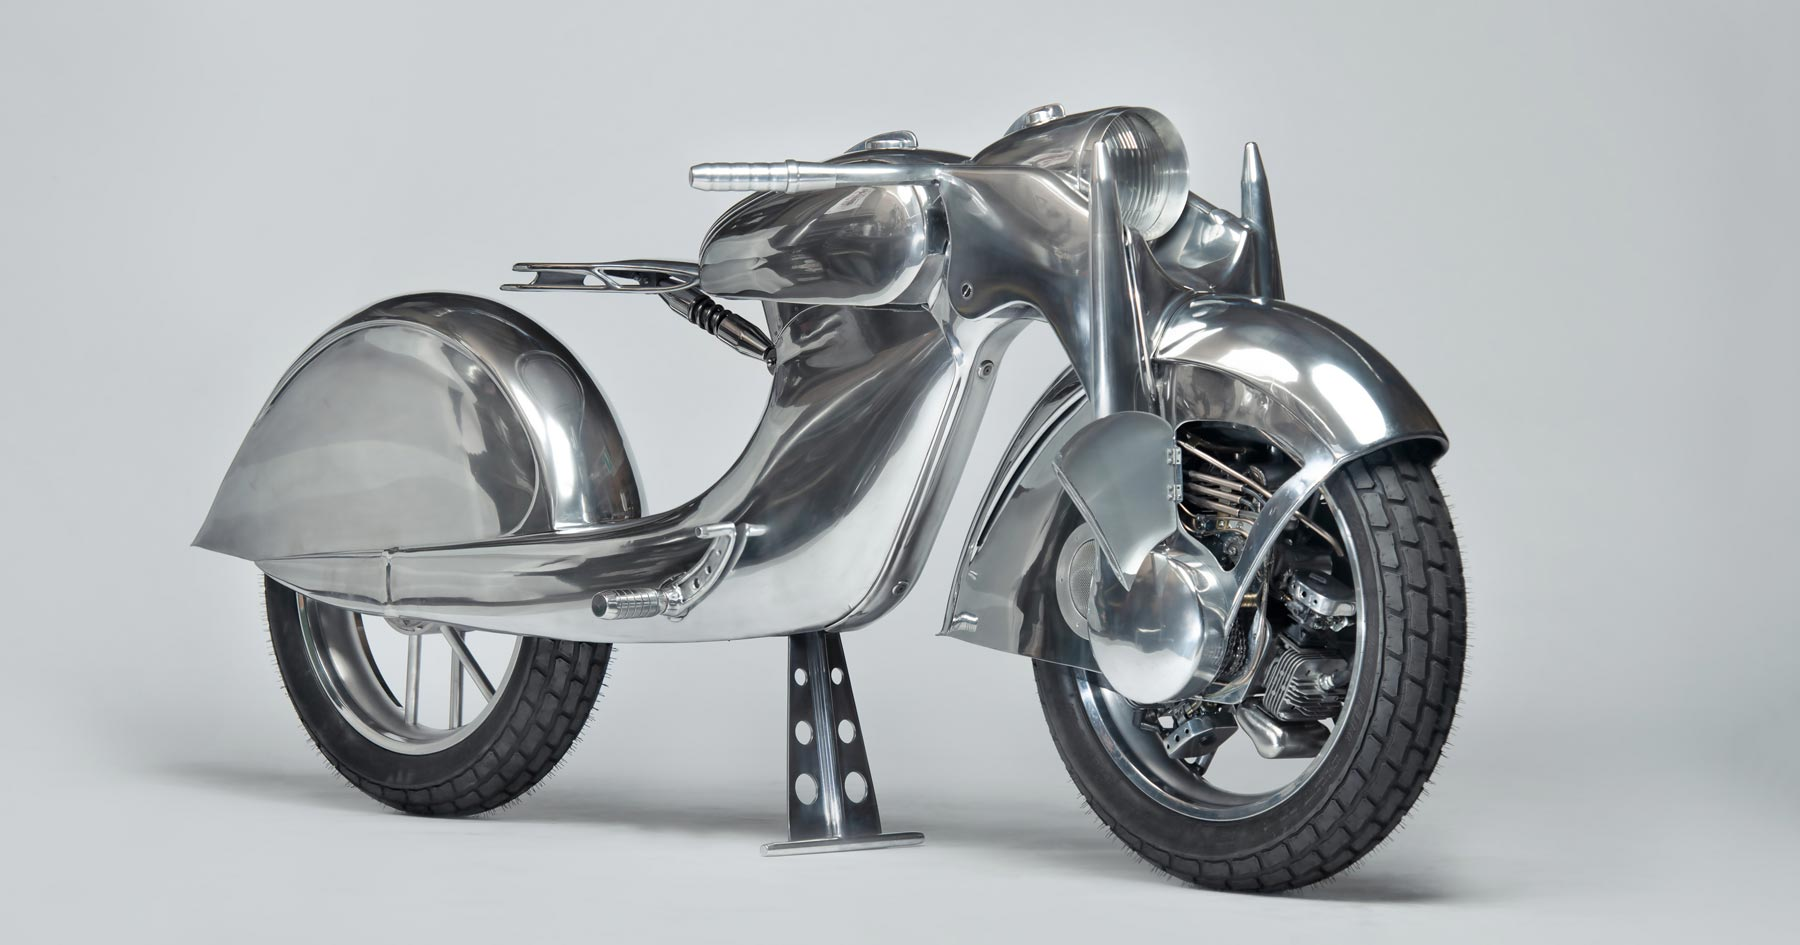 The Killer: A front wheel drive motorcycle from Rodsmith